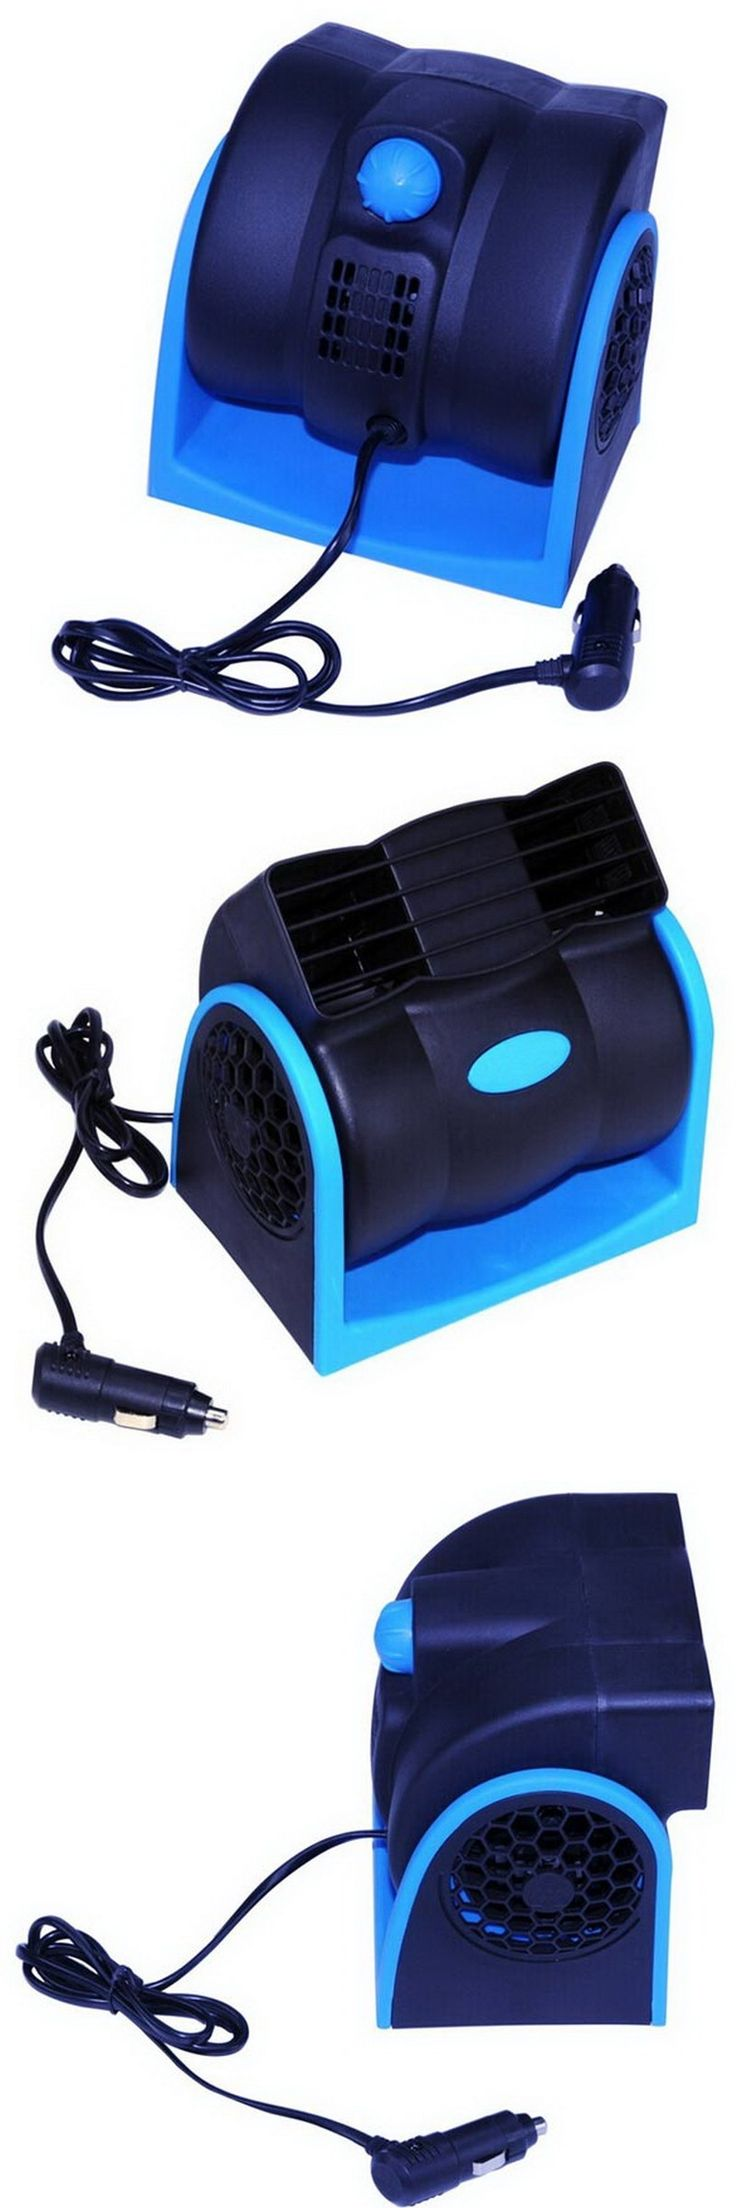 Low Noise Car Air Conditioner 12V Car Vehicle Truck Cooling Air Fan Cooler Cage Adjustable Silent Cooler Speed